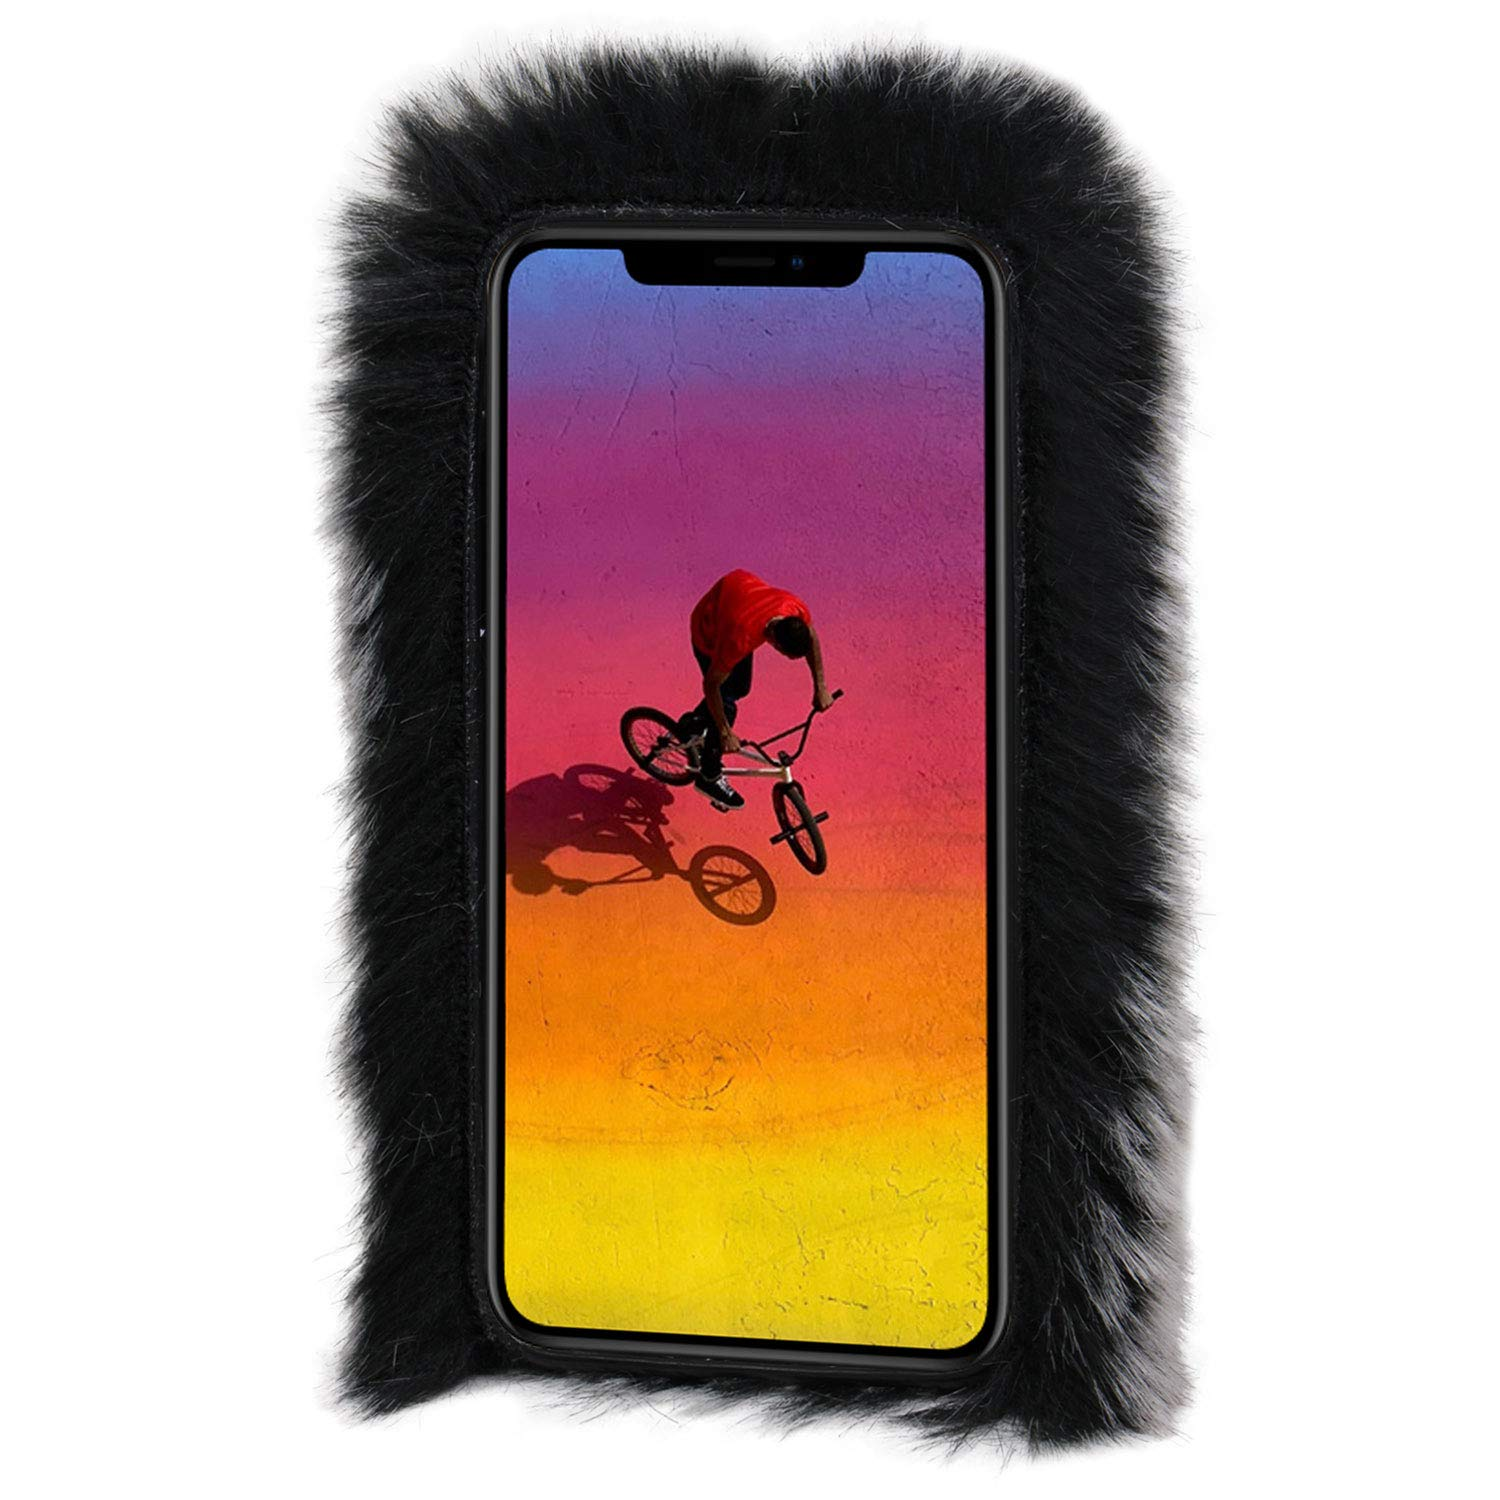 iPhone X//iPhone Xs 5.8 inch Aearl iPhone X Case,iPhone Xs Case,iPhone X Rabbit Fur Ball Case,Luxury Cute 3D Diamond Winter Warm Soft Furry Fluffy Fuzzy Bunny Ear Plush Cover for Girls Women-Gray